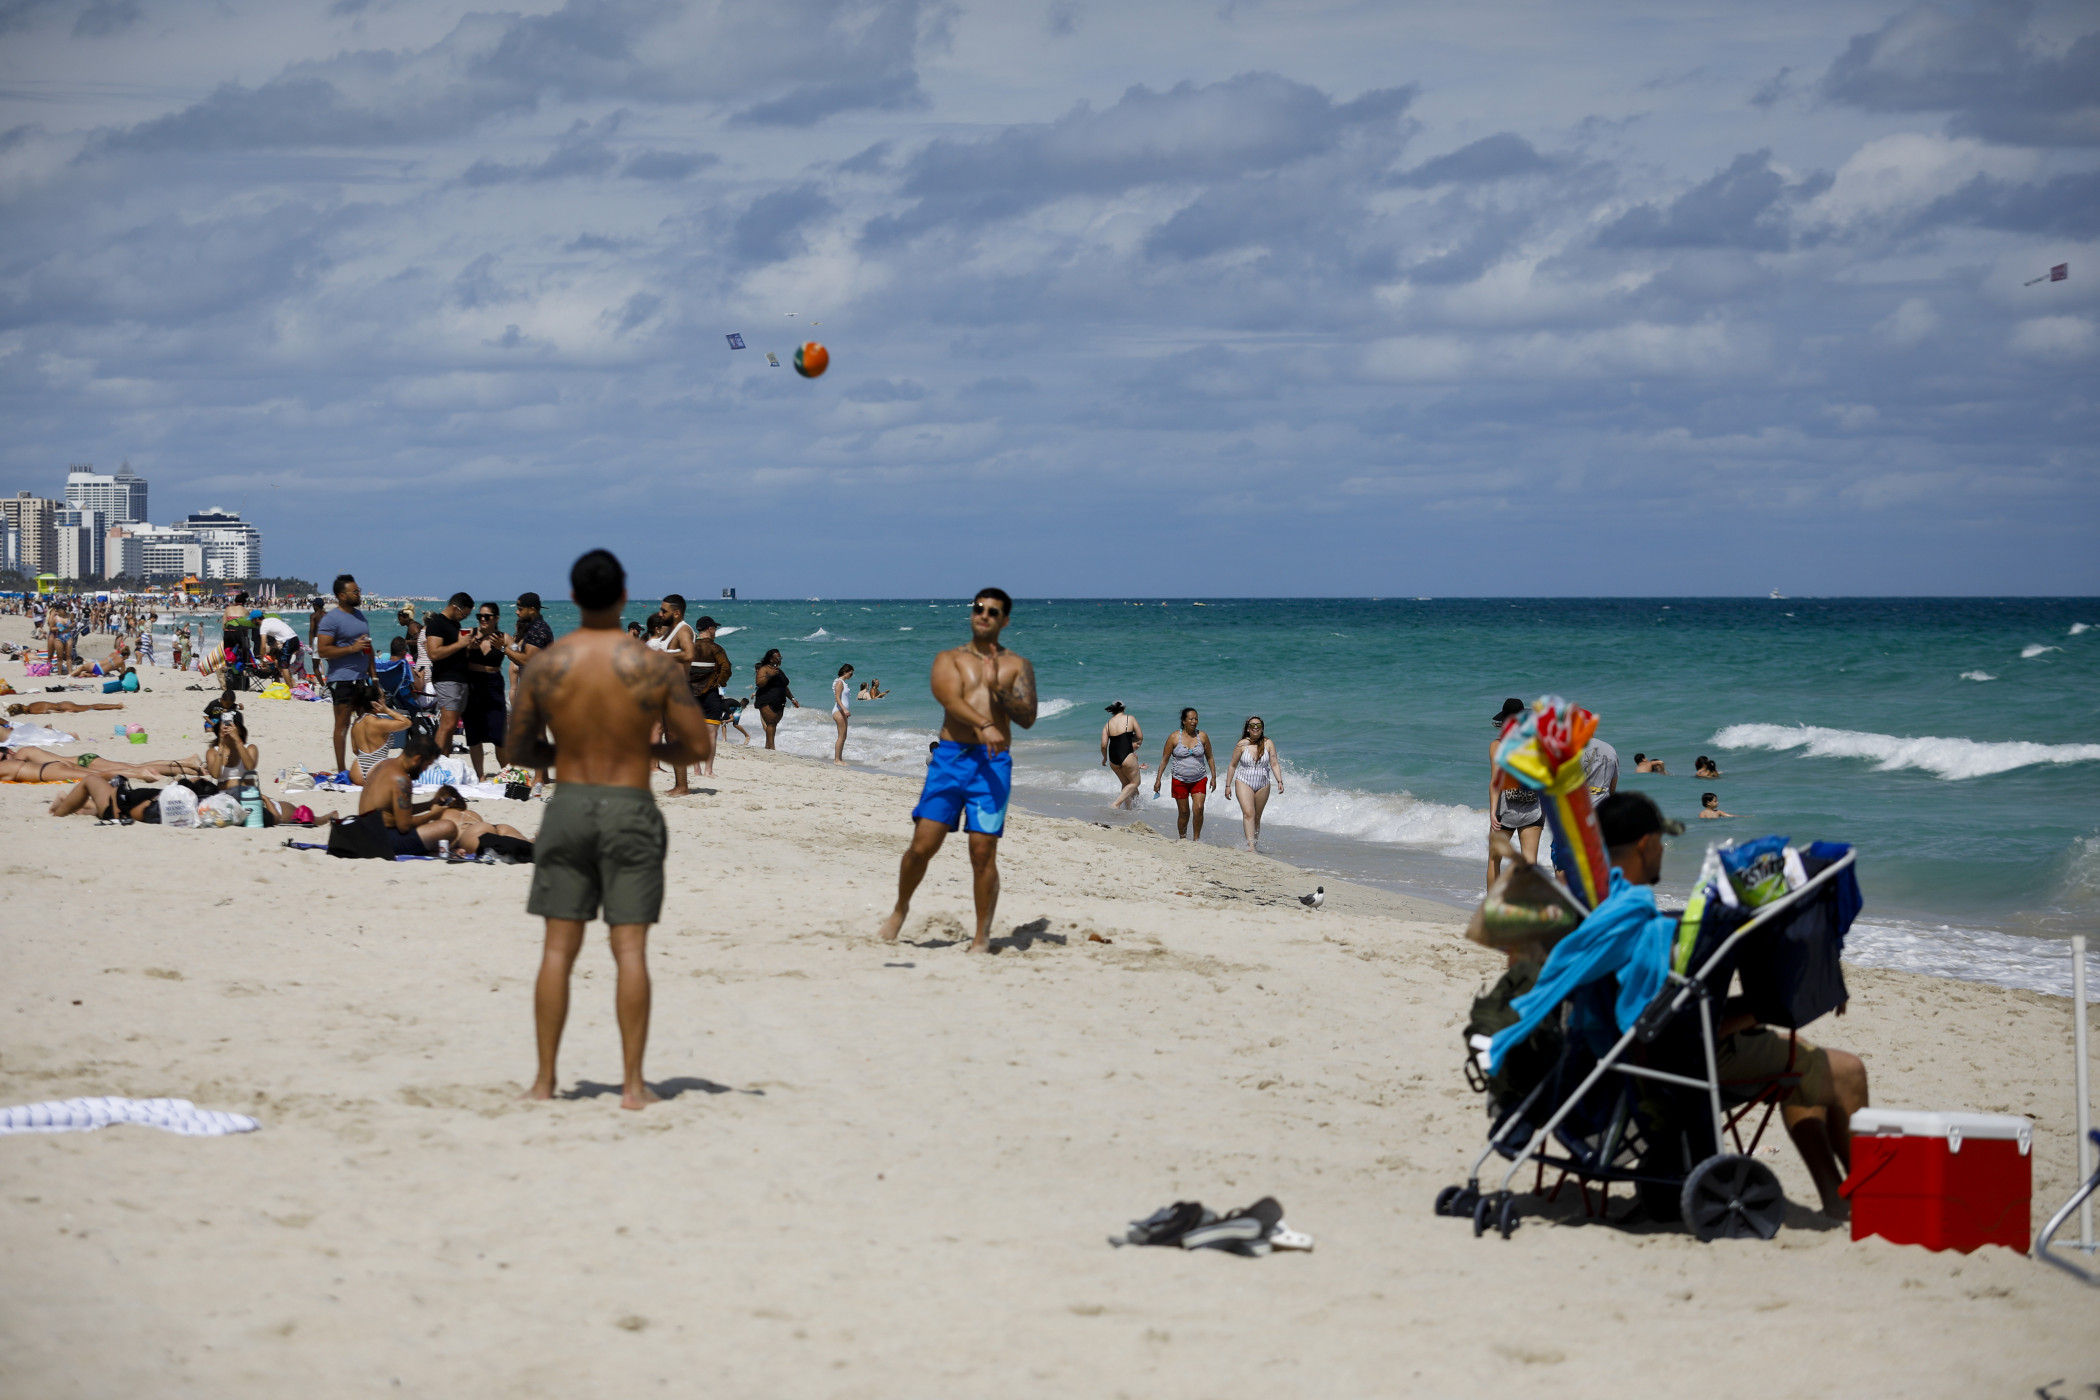 Beaches such as those in Miami helped boost hotel occupancy to another pandemic high. (Getty Images)